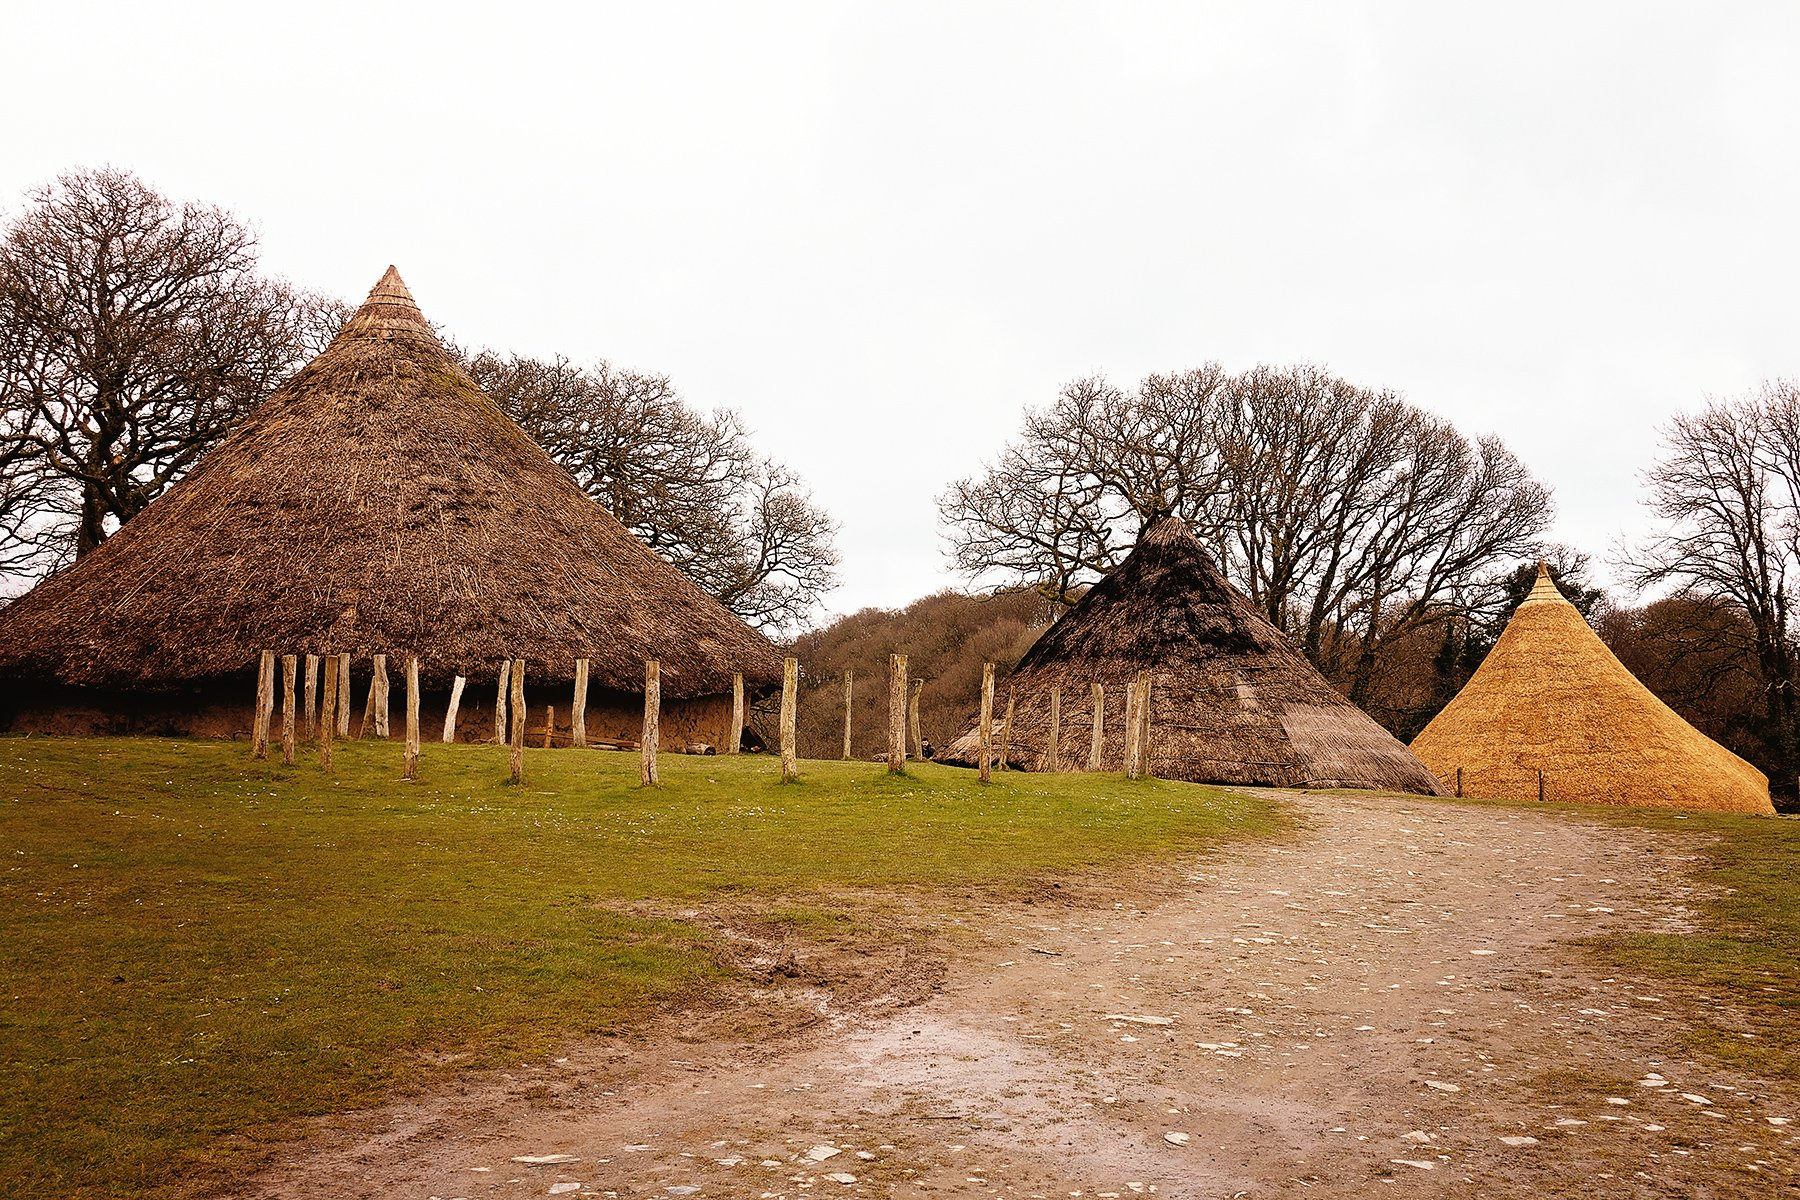 Iron Age Village at Castell Henllys in Pembrokeshire